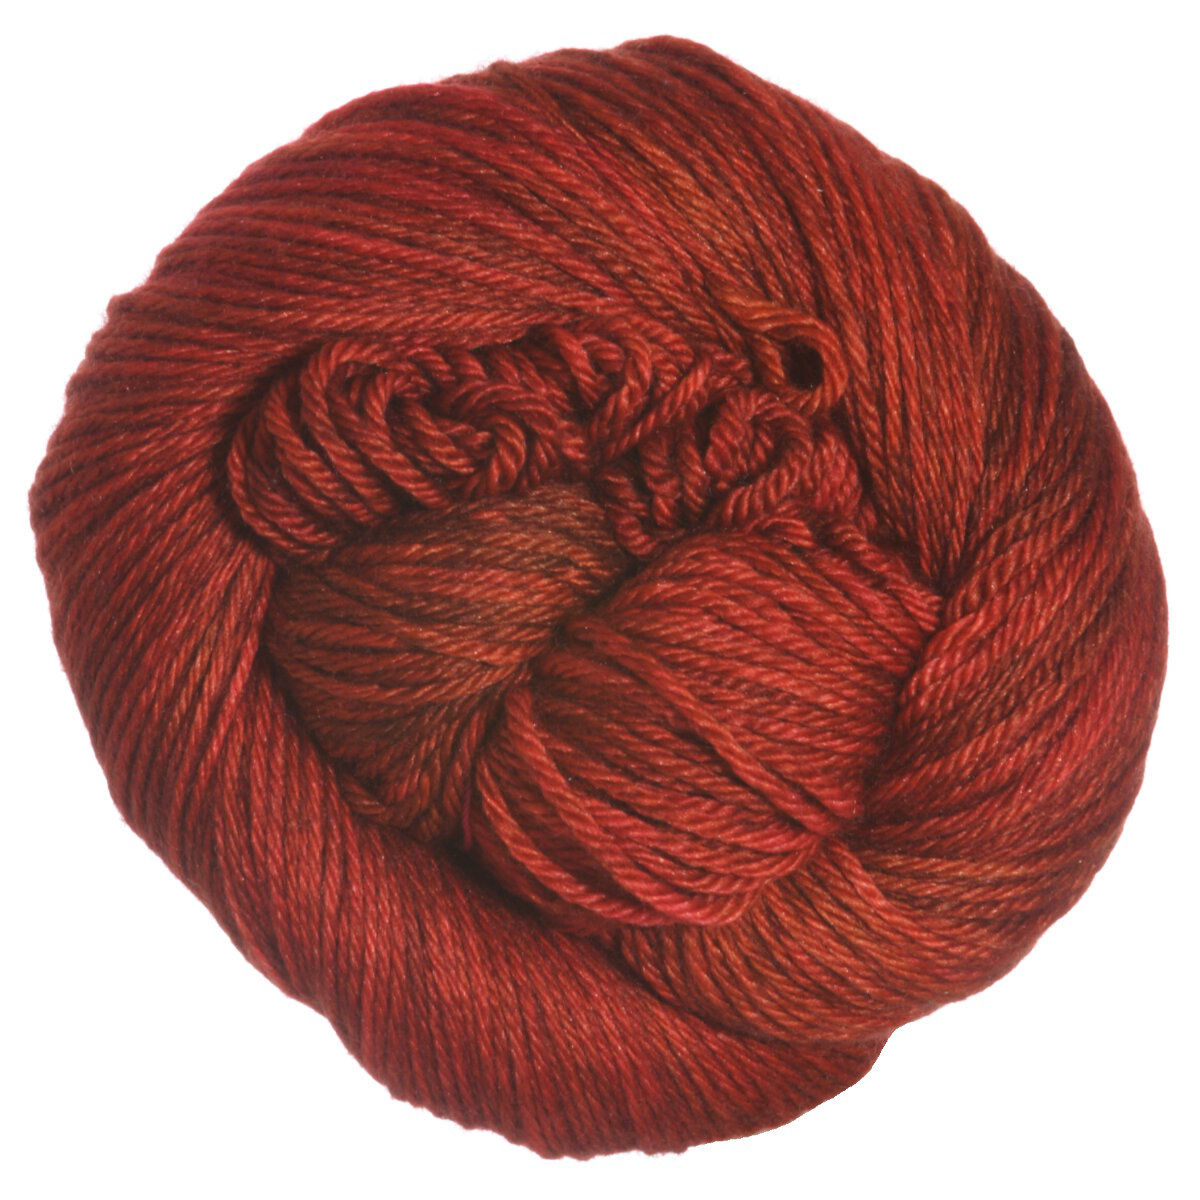 Madelinetosh Pashmina Worsted Yarn - Robin Red Breast at Jimmy Beans Wool